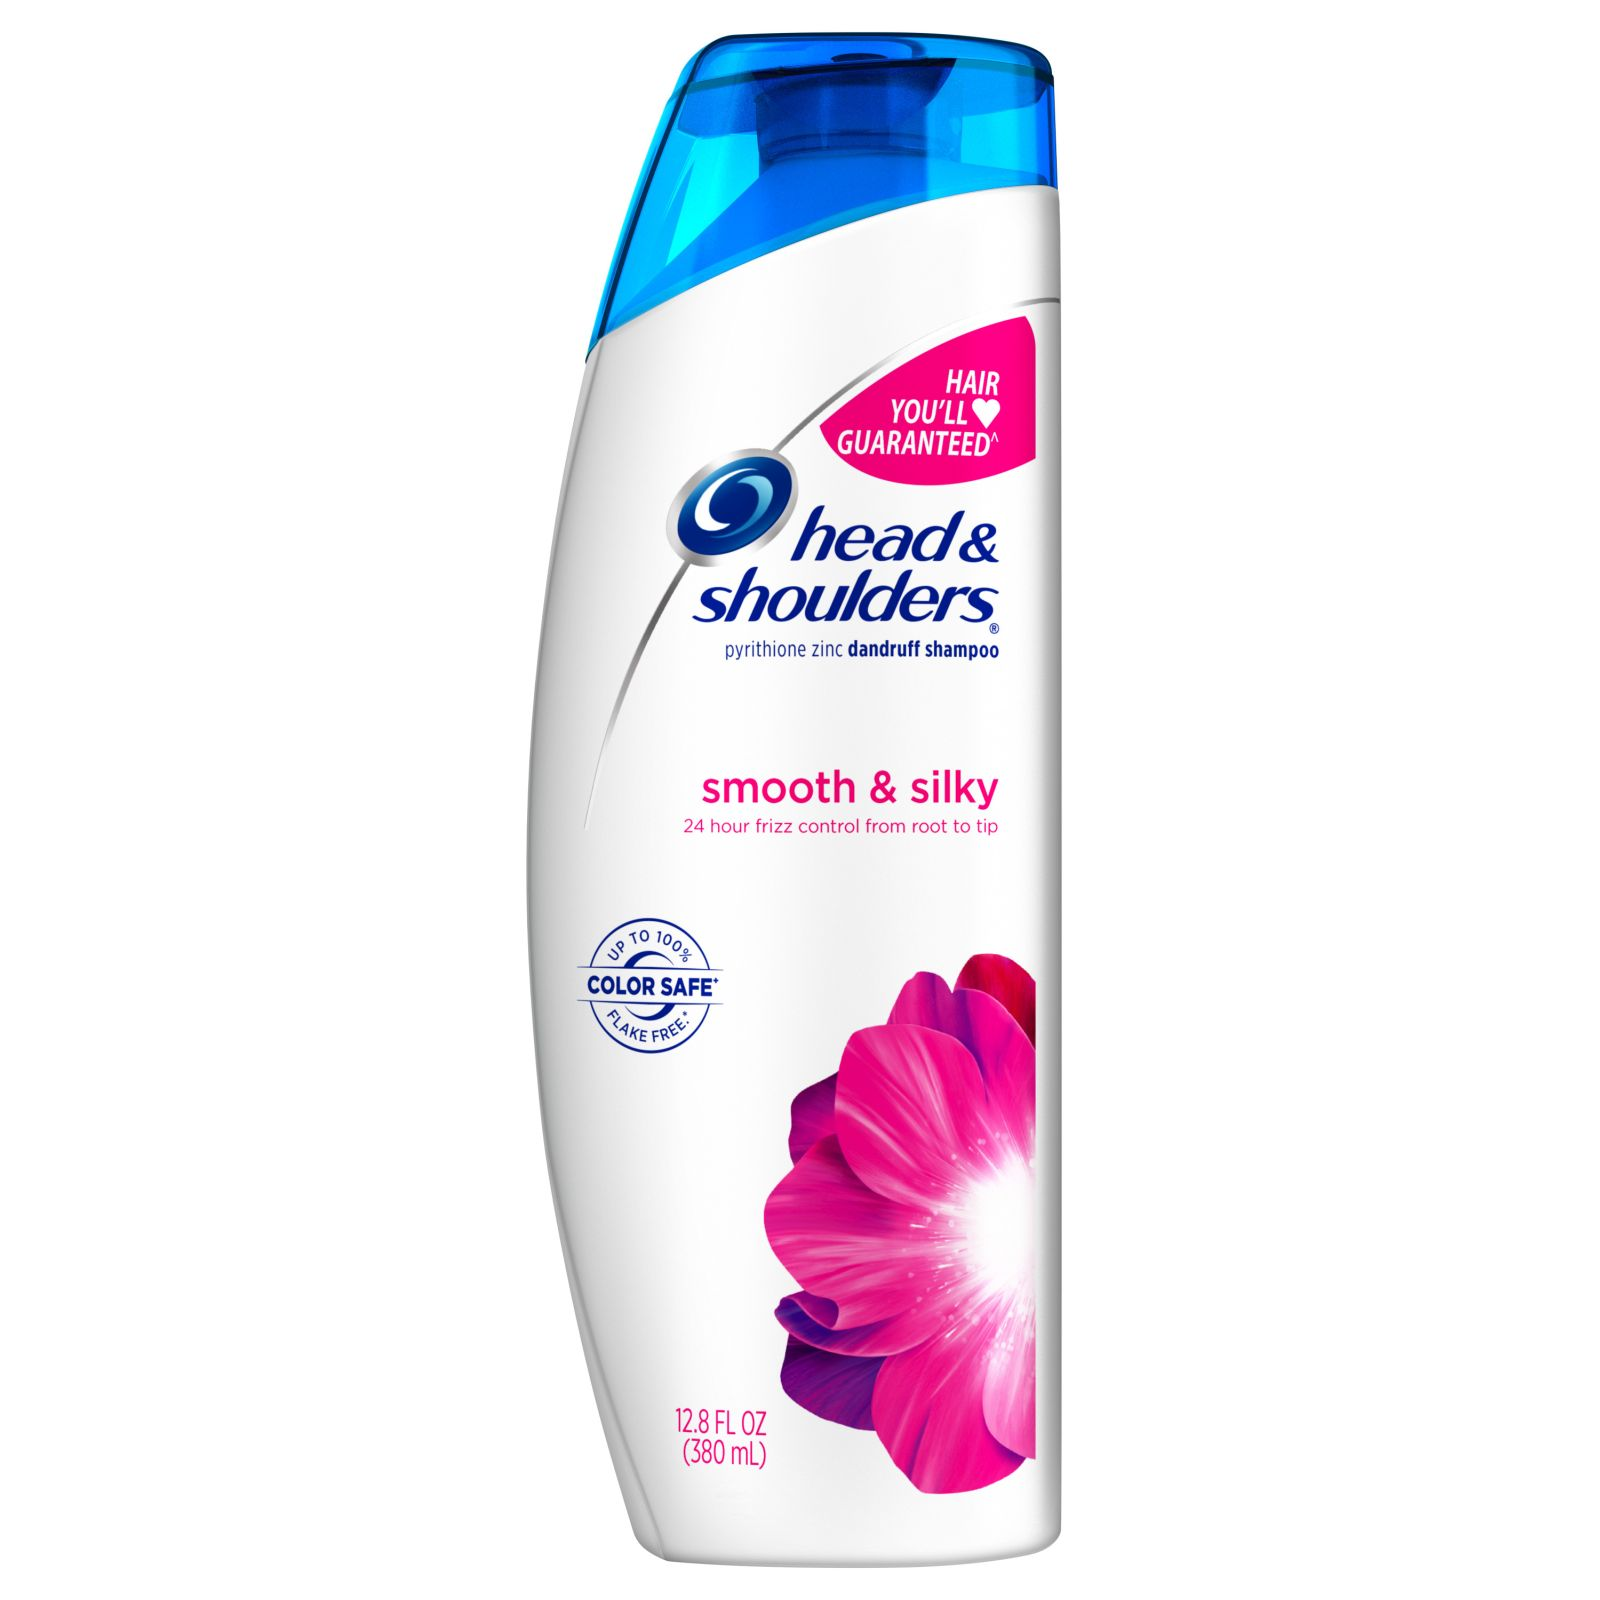 Smooth & Silky Shampoo